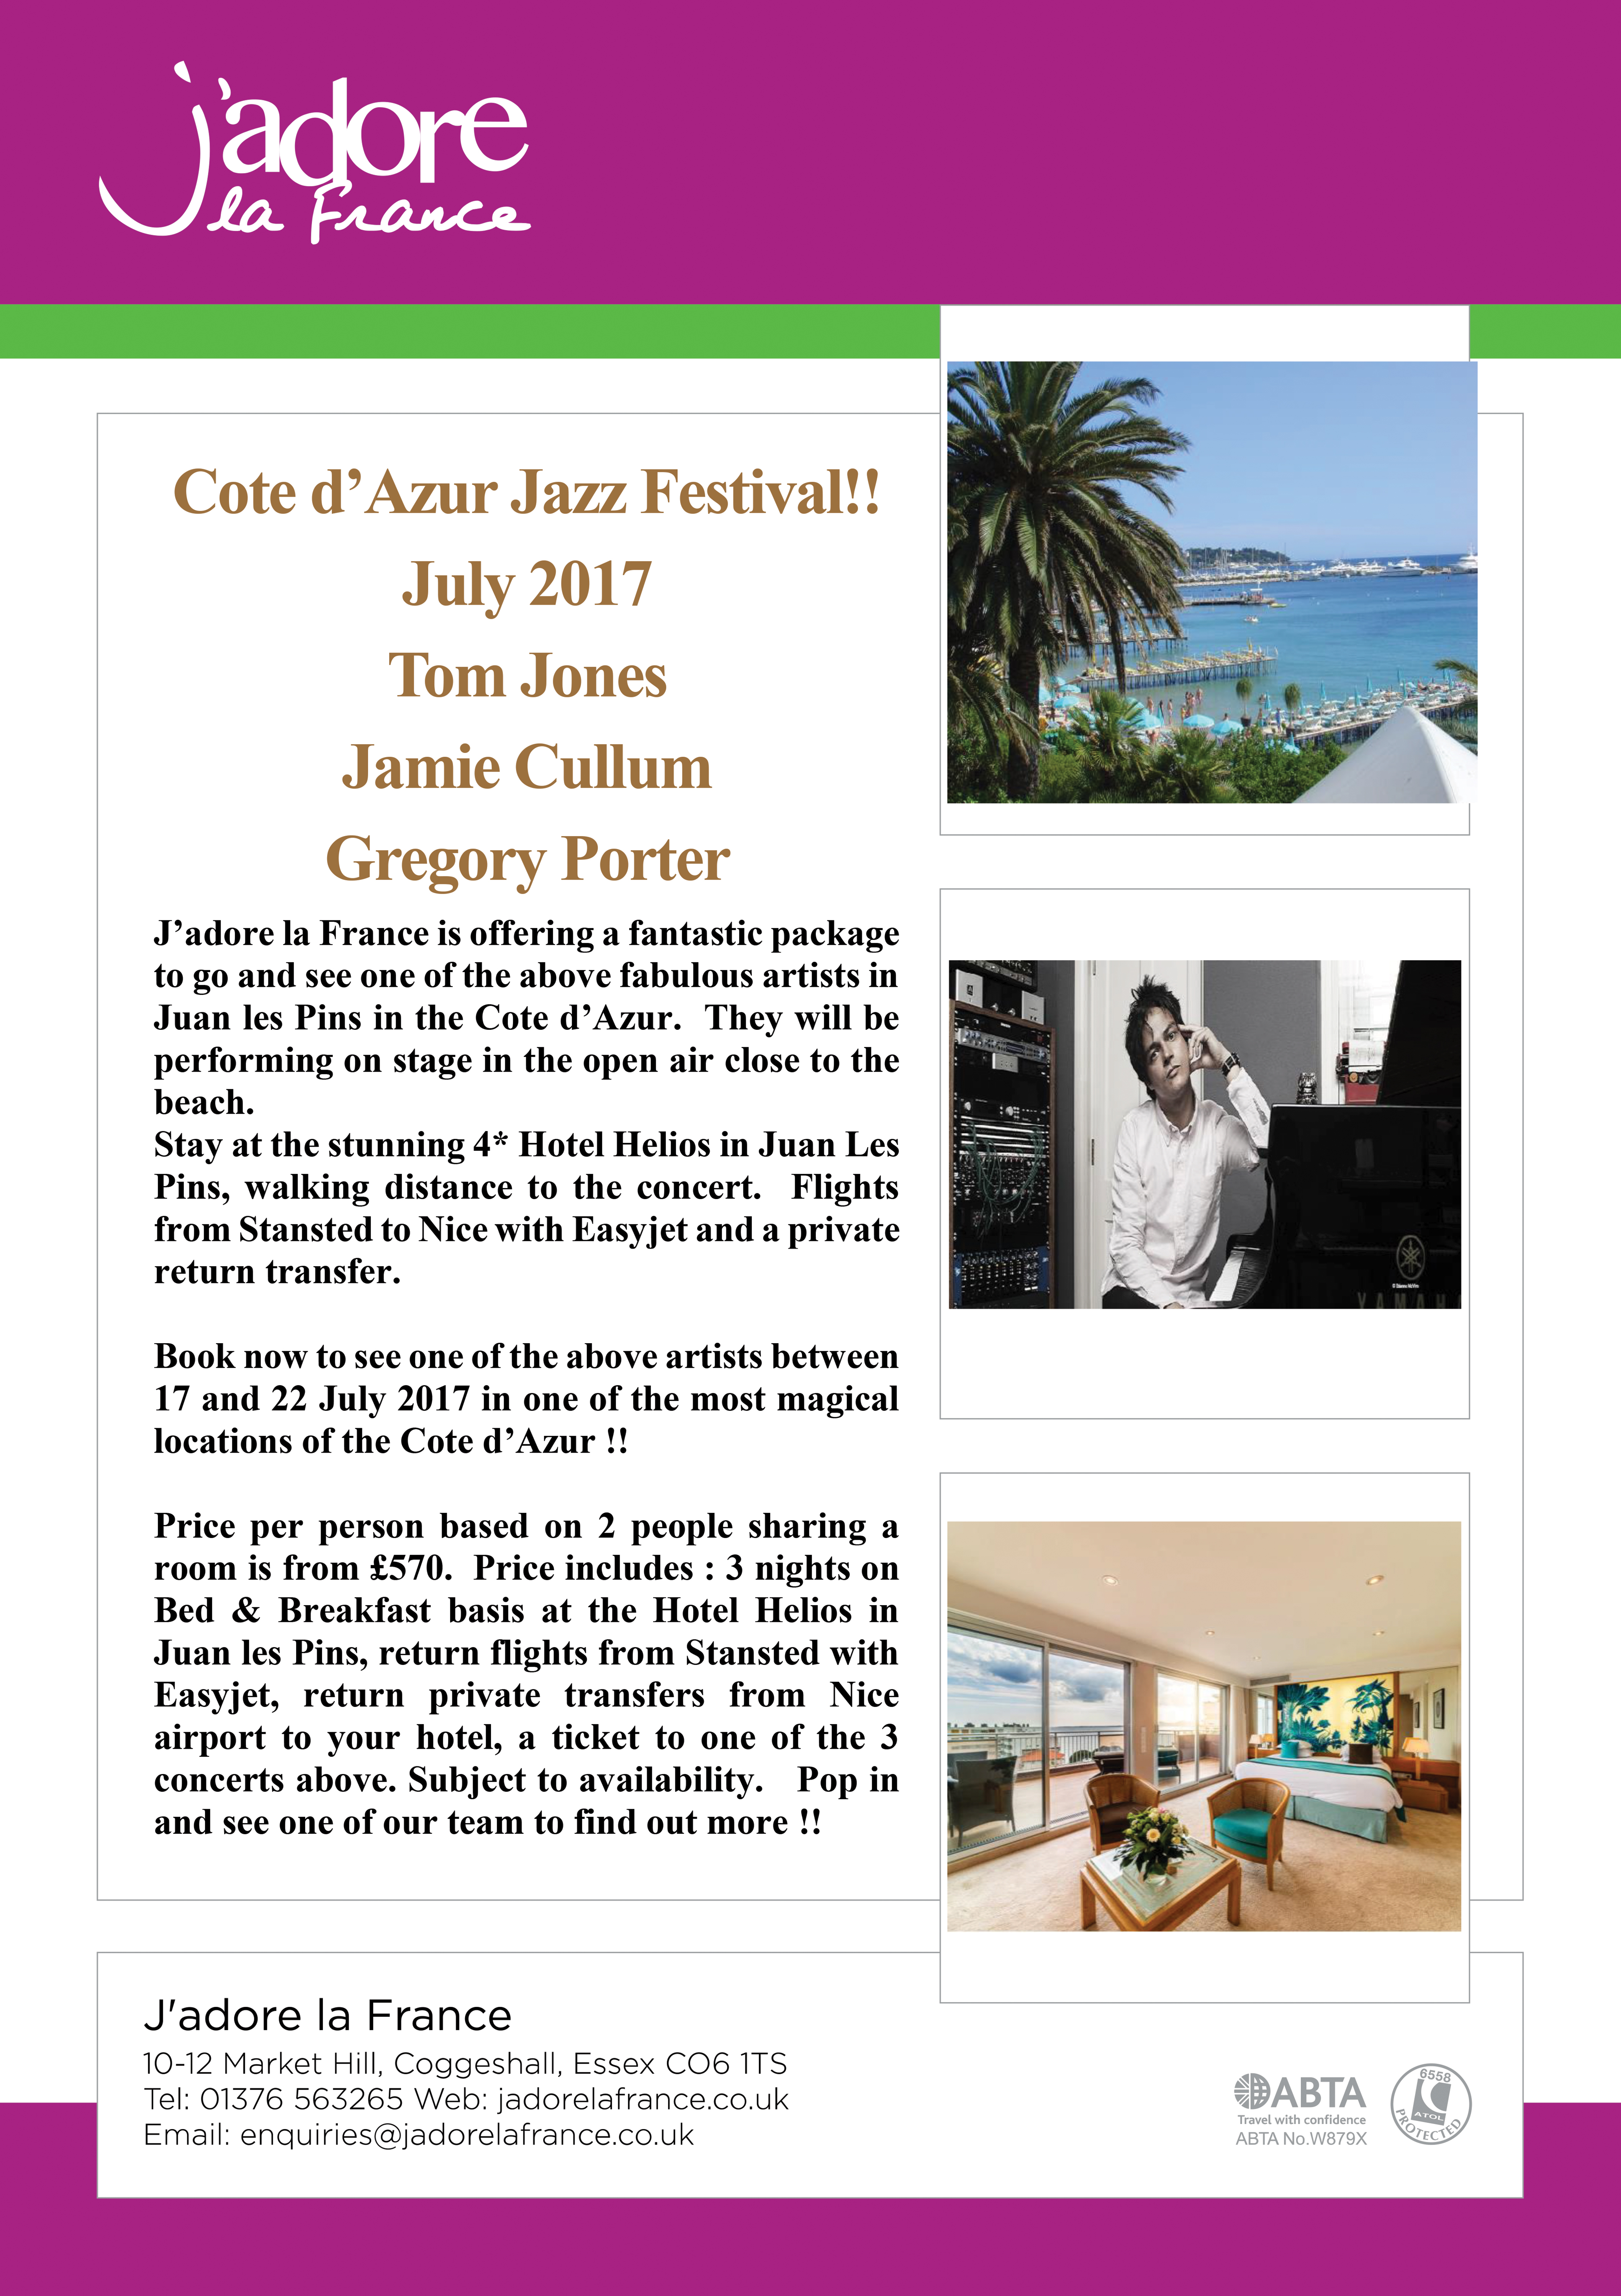 Cote D'Azur Jazz Festival!! July 2017 Tom Jones Jamie Cullum Gregory Porter